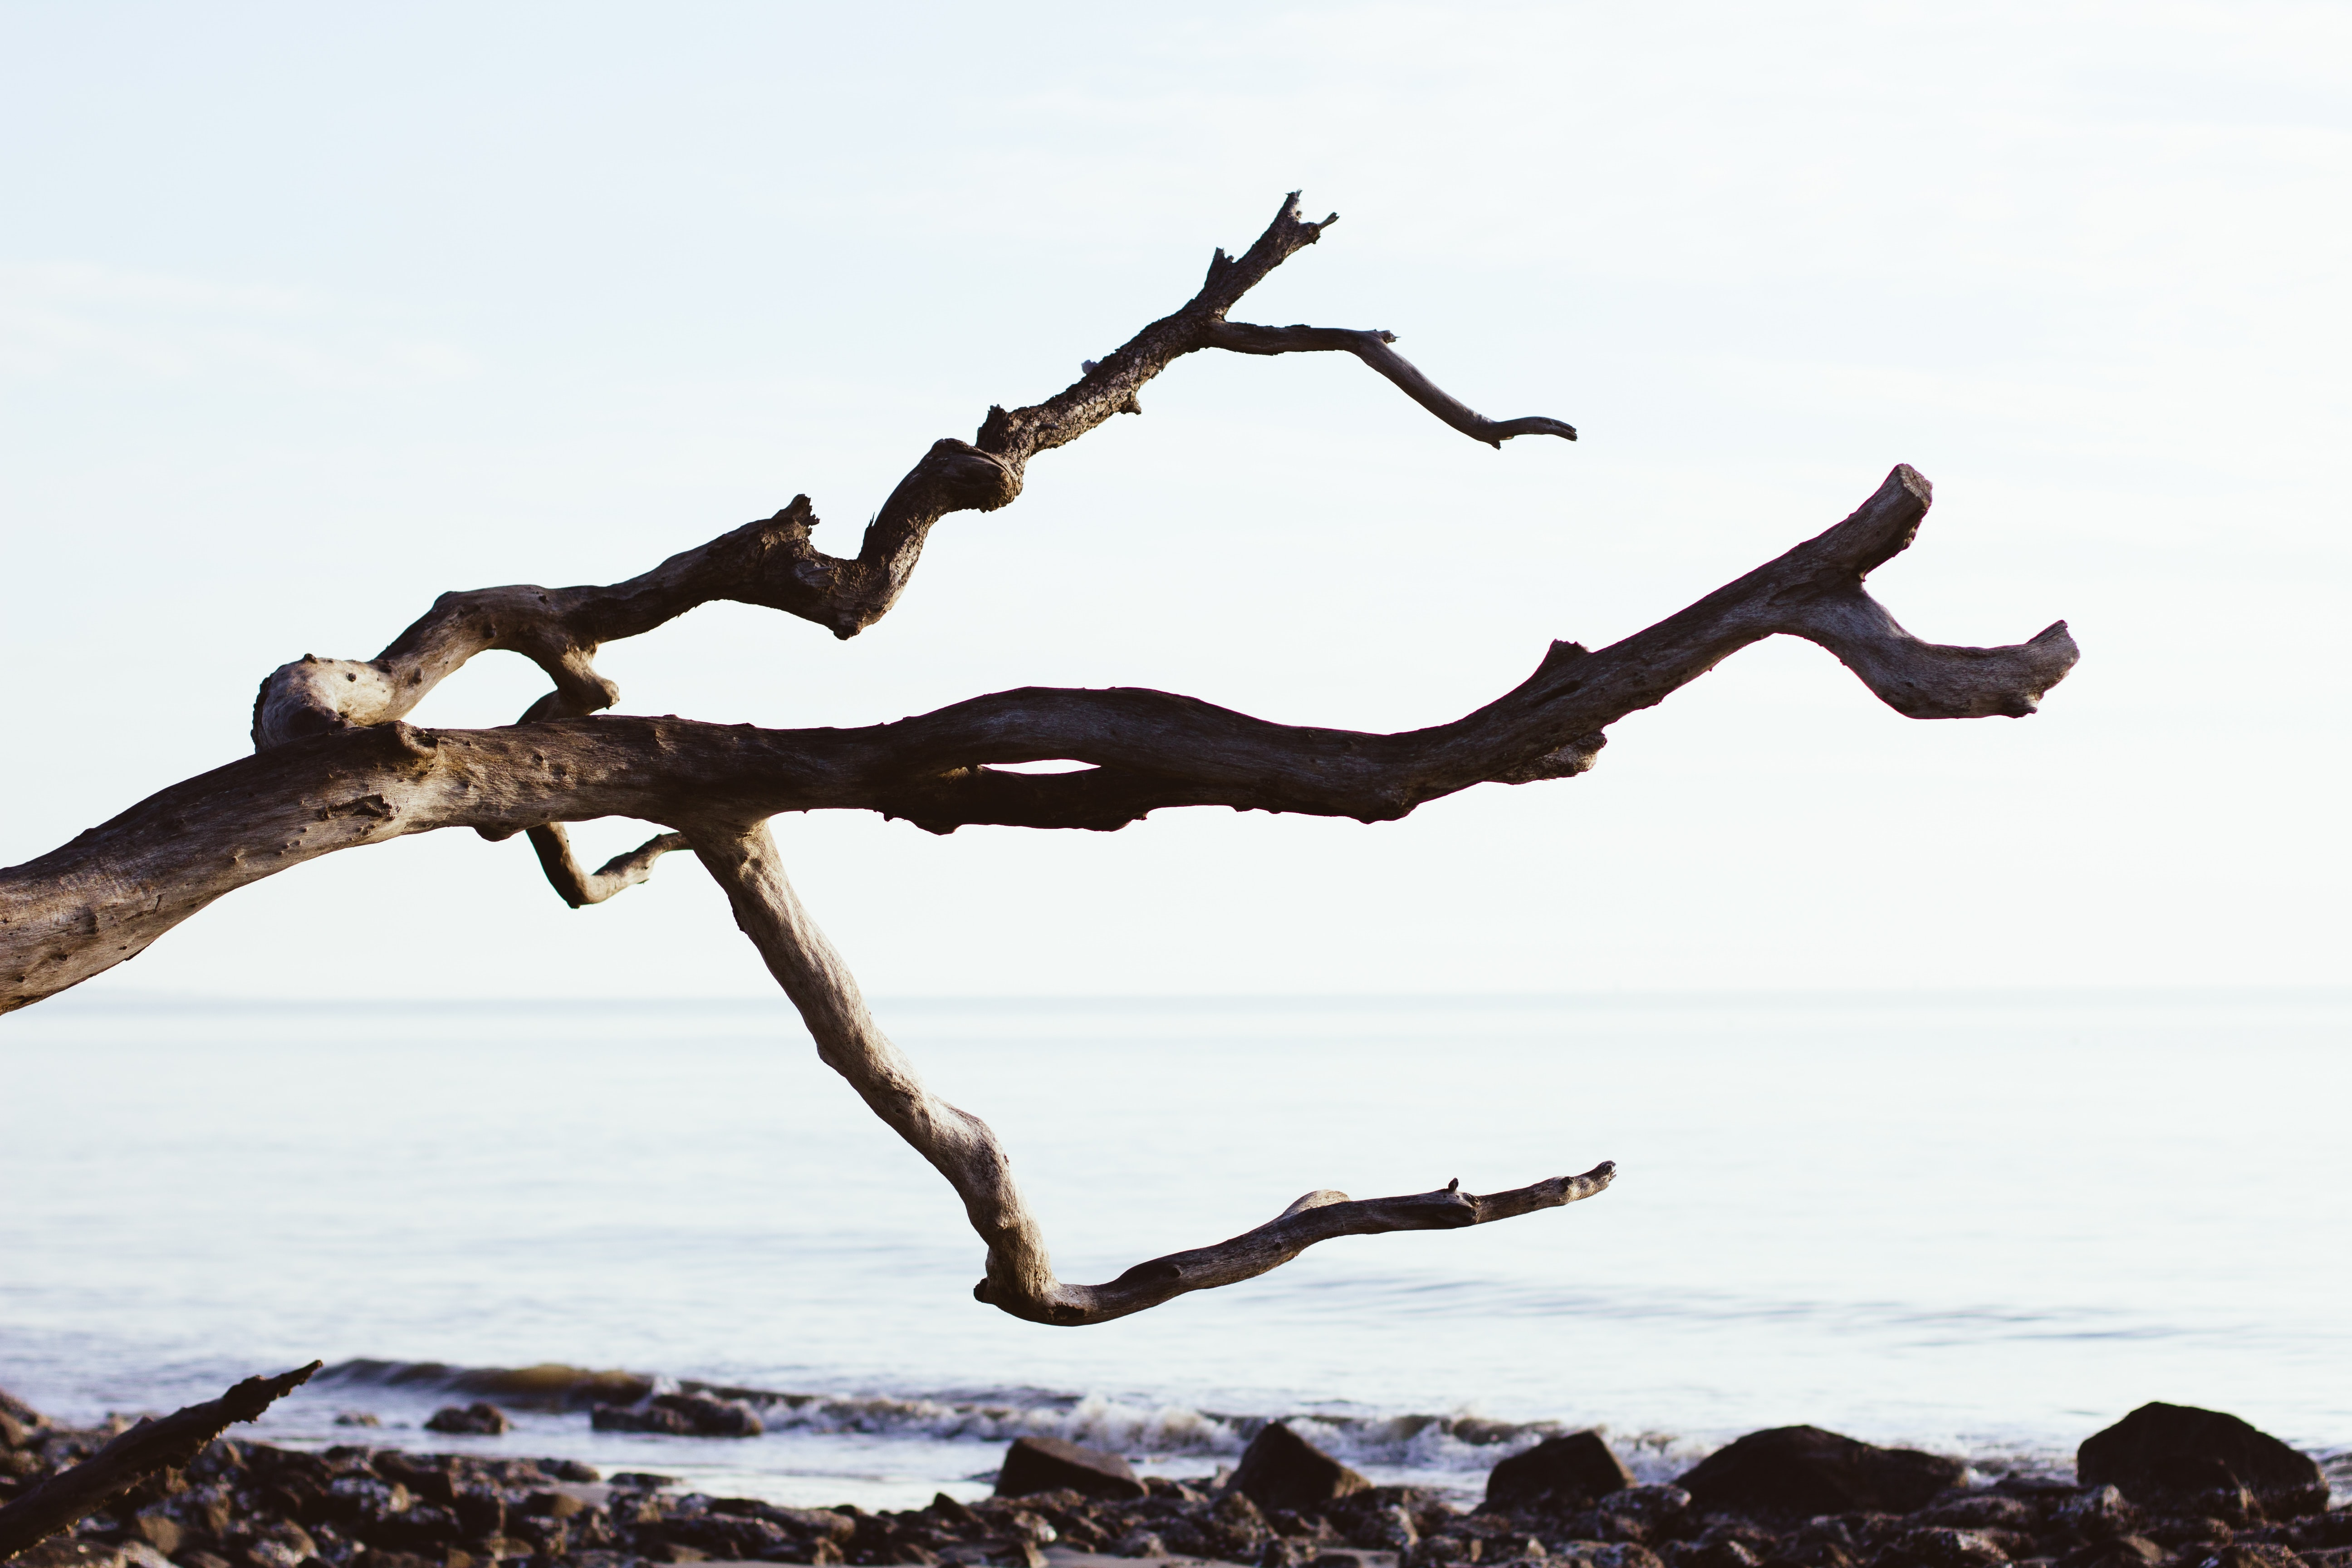 close up photography of driftwood near sea